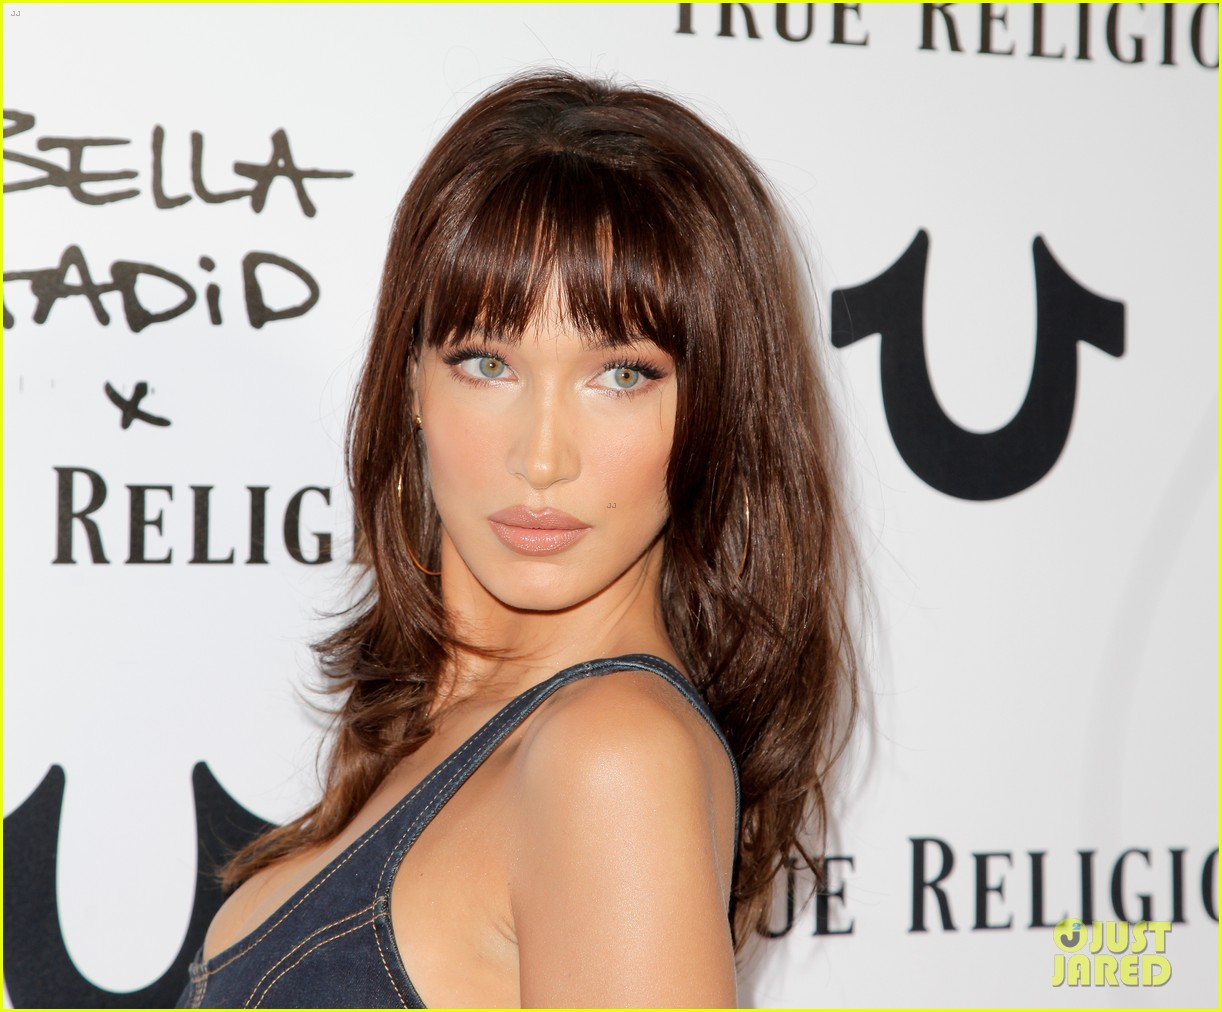 bella hadid hosts star studded event for true religion campaign30